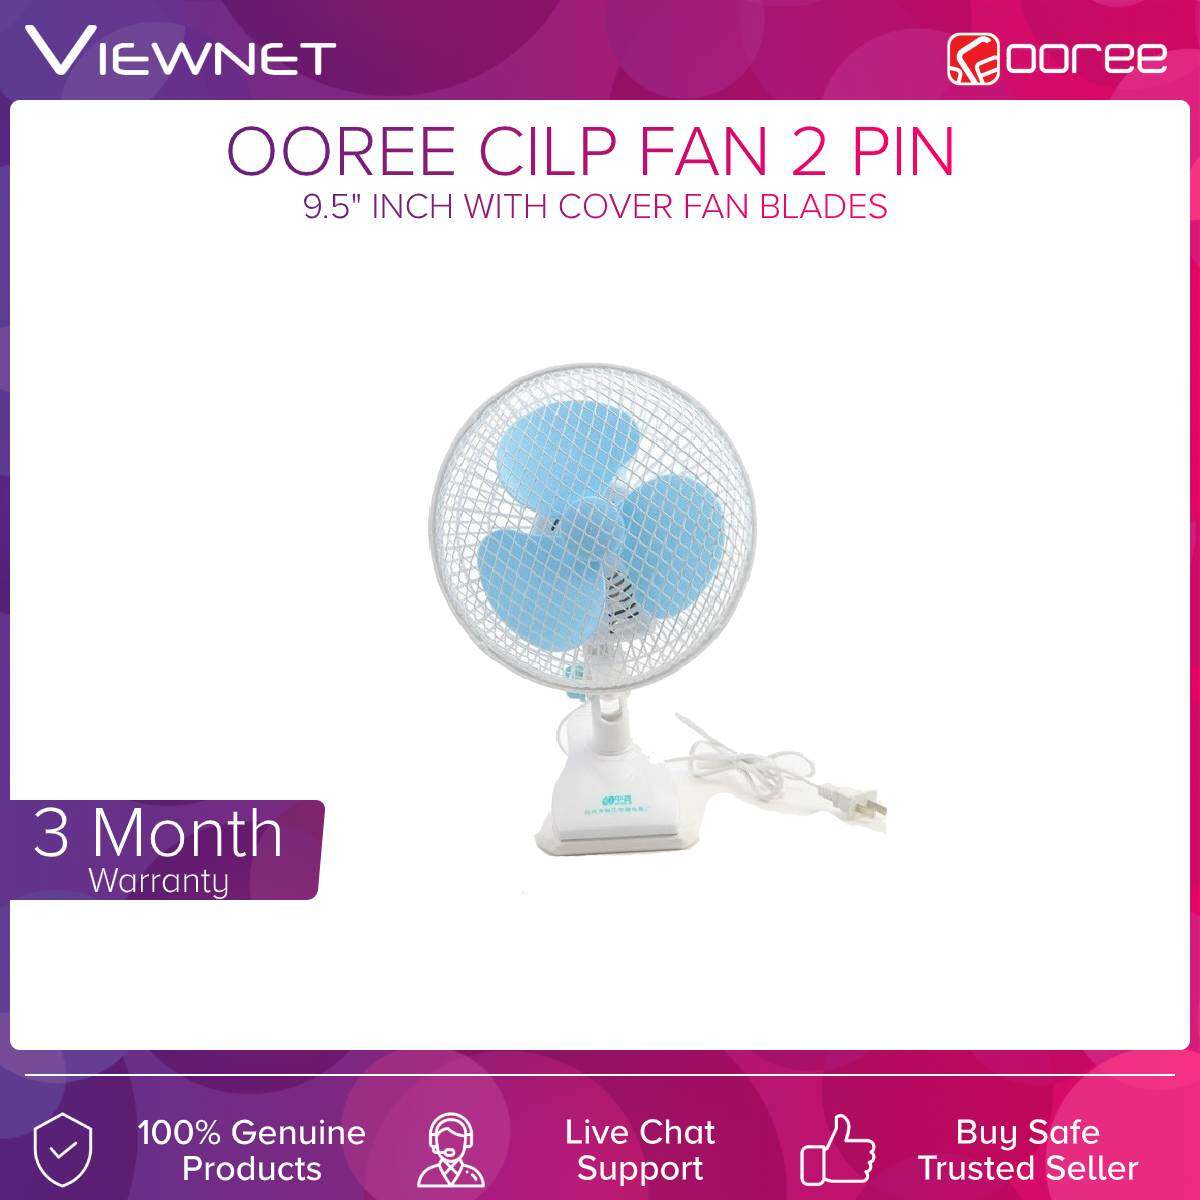 Ooree UF095 9.5 INCH Home Appliances Proable Adjustable Rotatable Electronic Table Desk Clip Fan With Cover & 3 Fan Blades / Strong Powerful Wind